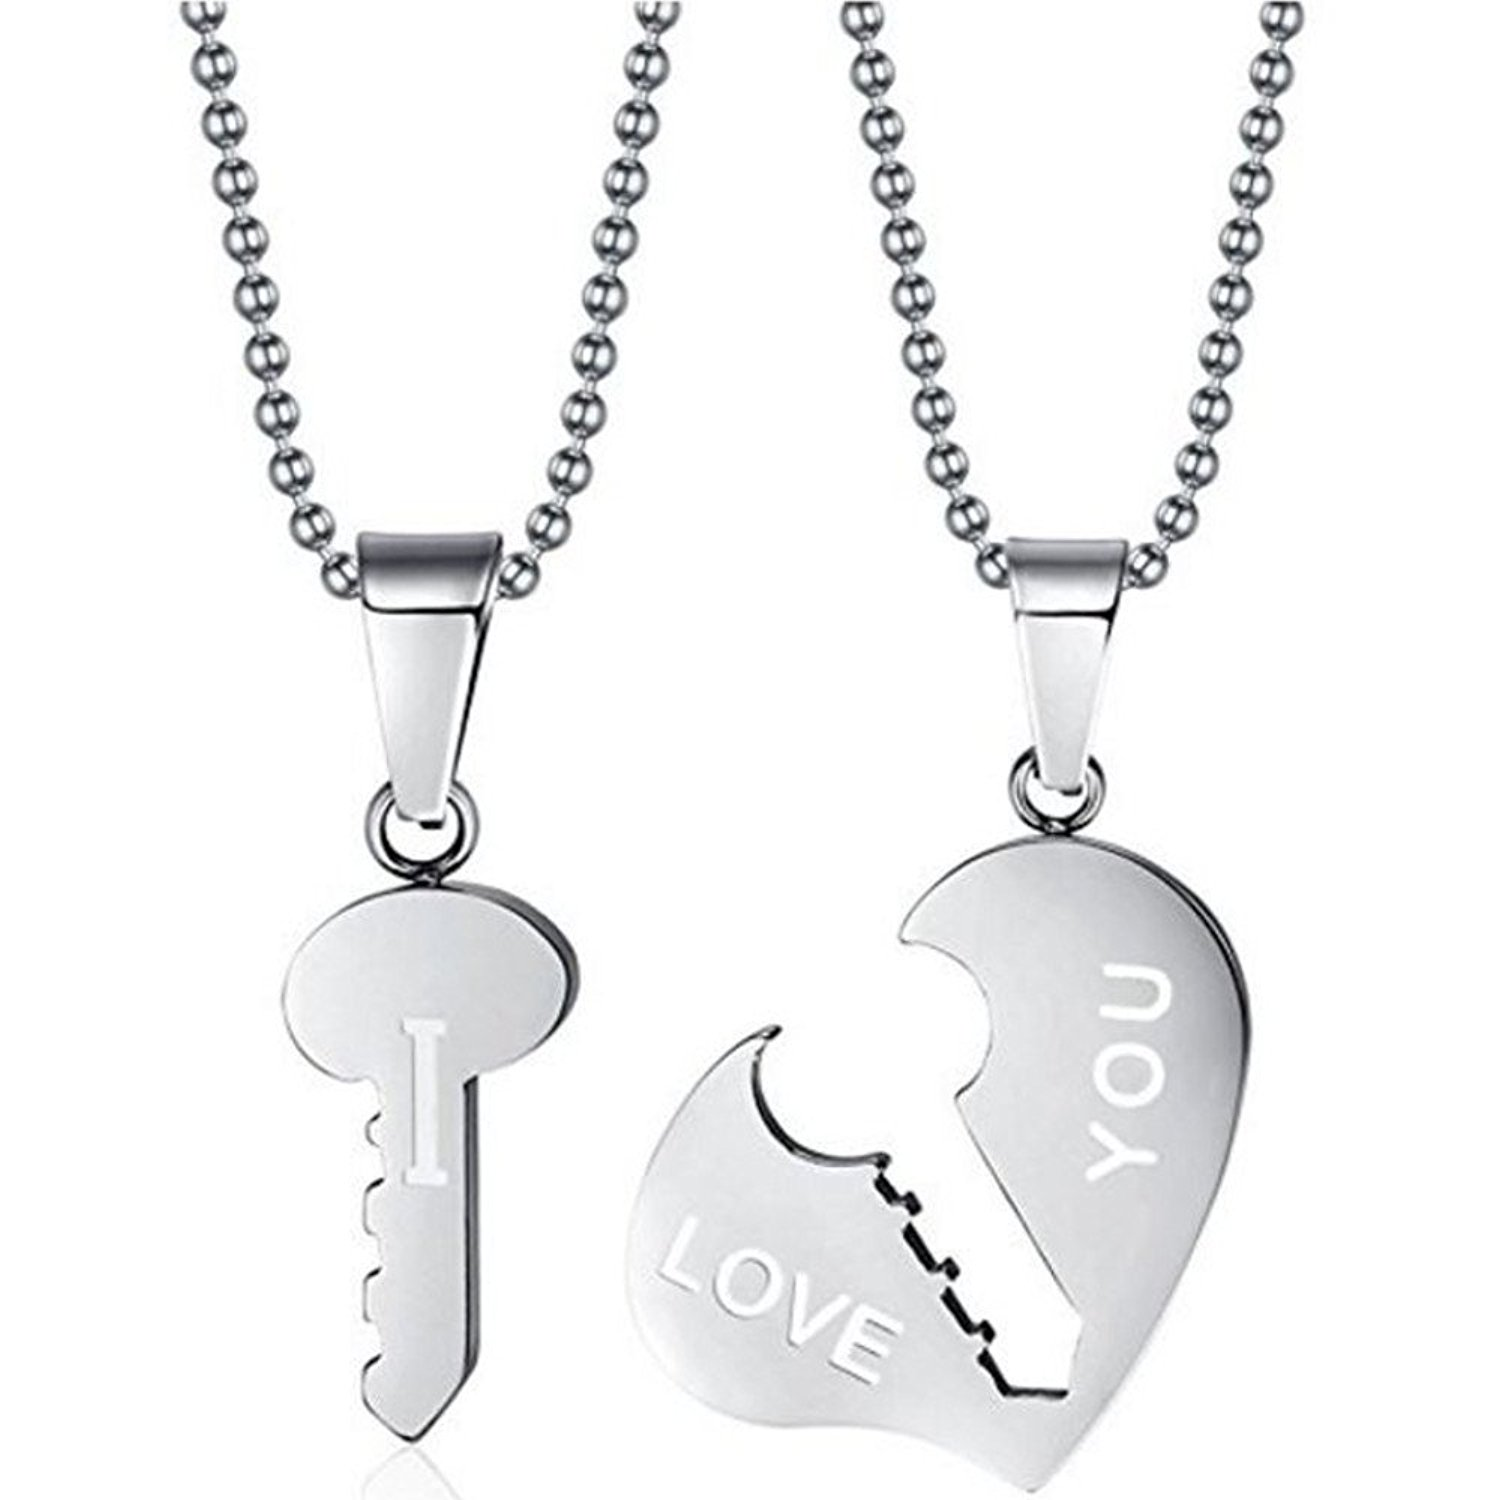 Epic Brand Couples Necklace Stainless Steel Heart and Key I Love You Pendants 20 inch Chain (2 piece set)